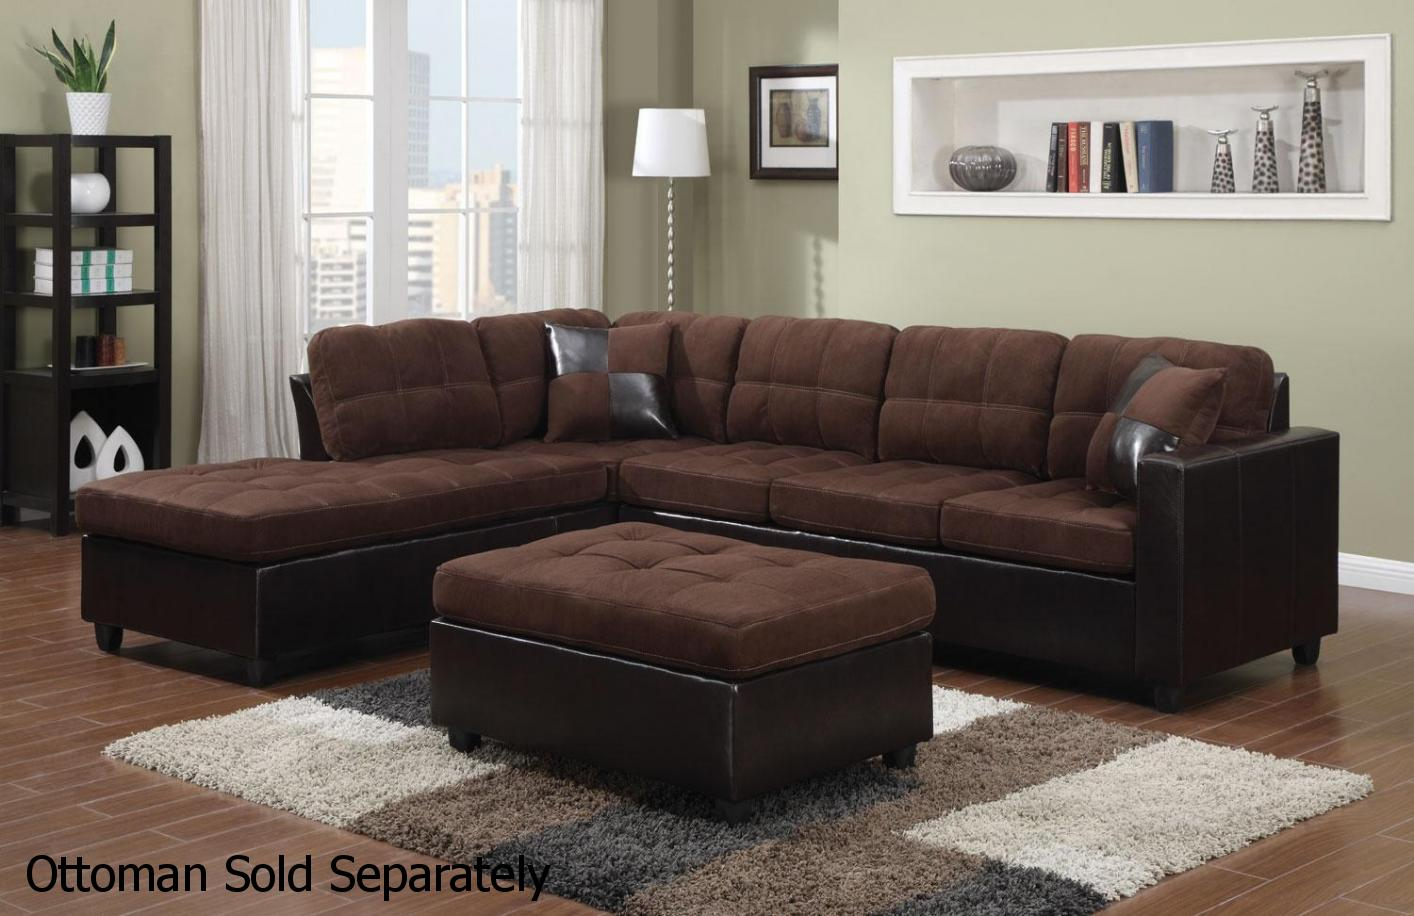 Mallory brown leather sectional sofa steal a sofa for Leather sectional sofa